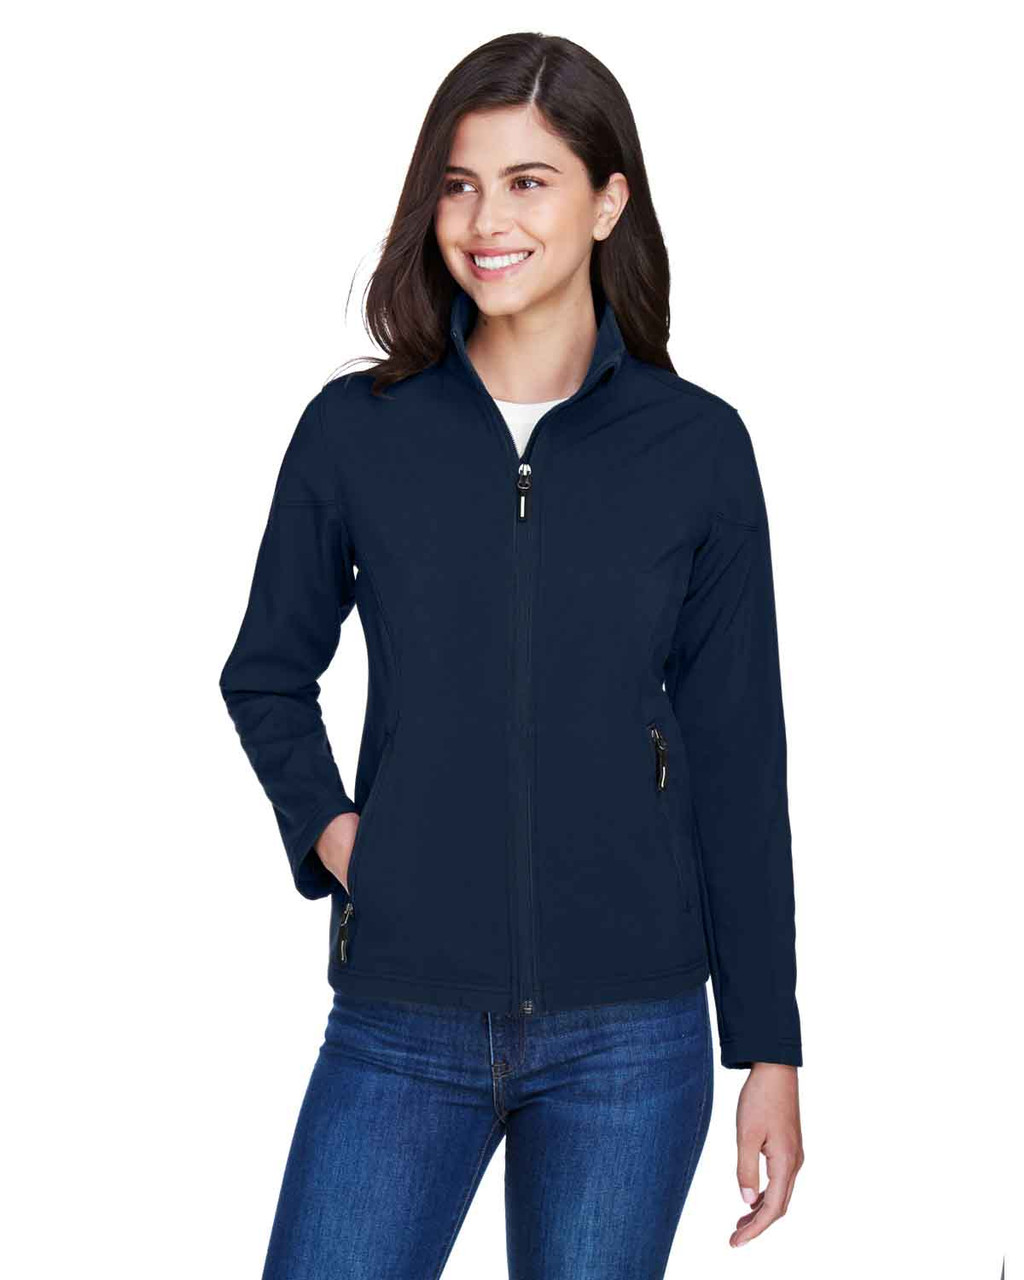 Classic Navy - 78184 Core 365 Ladies' Fleece Soft Shell Jacket | Blankclothing.ca